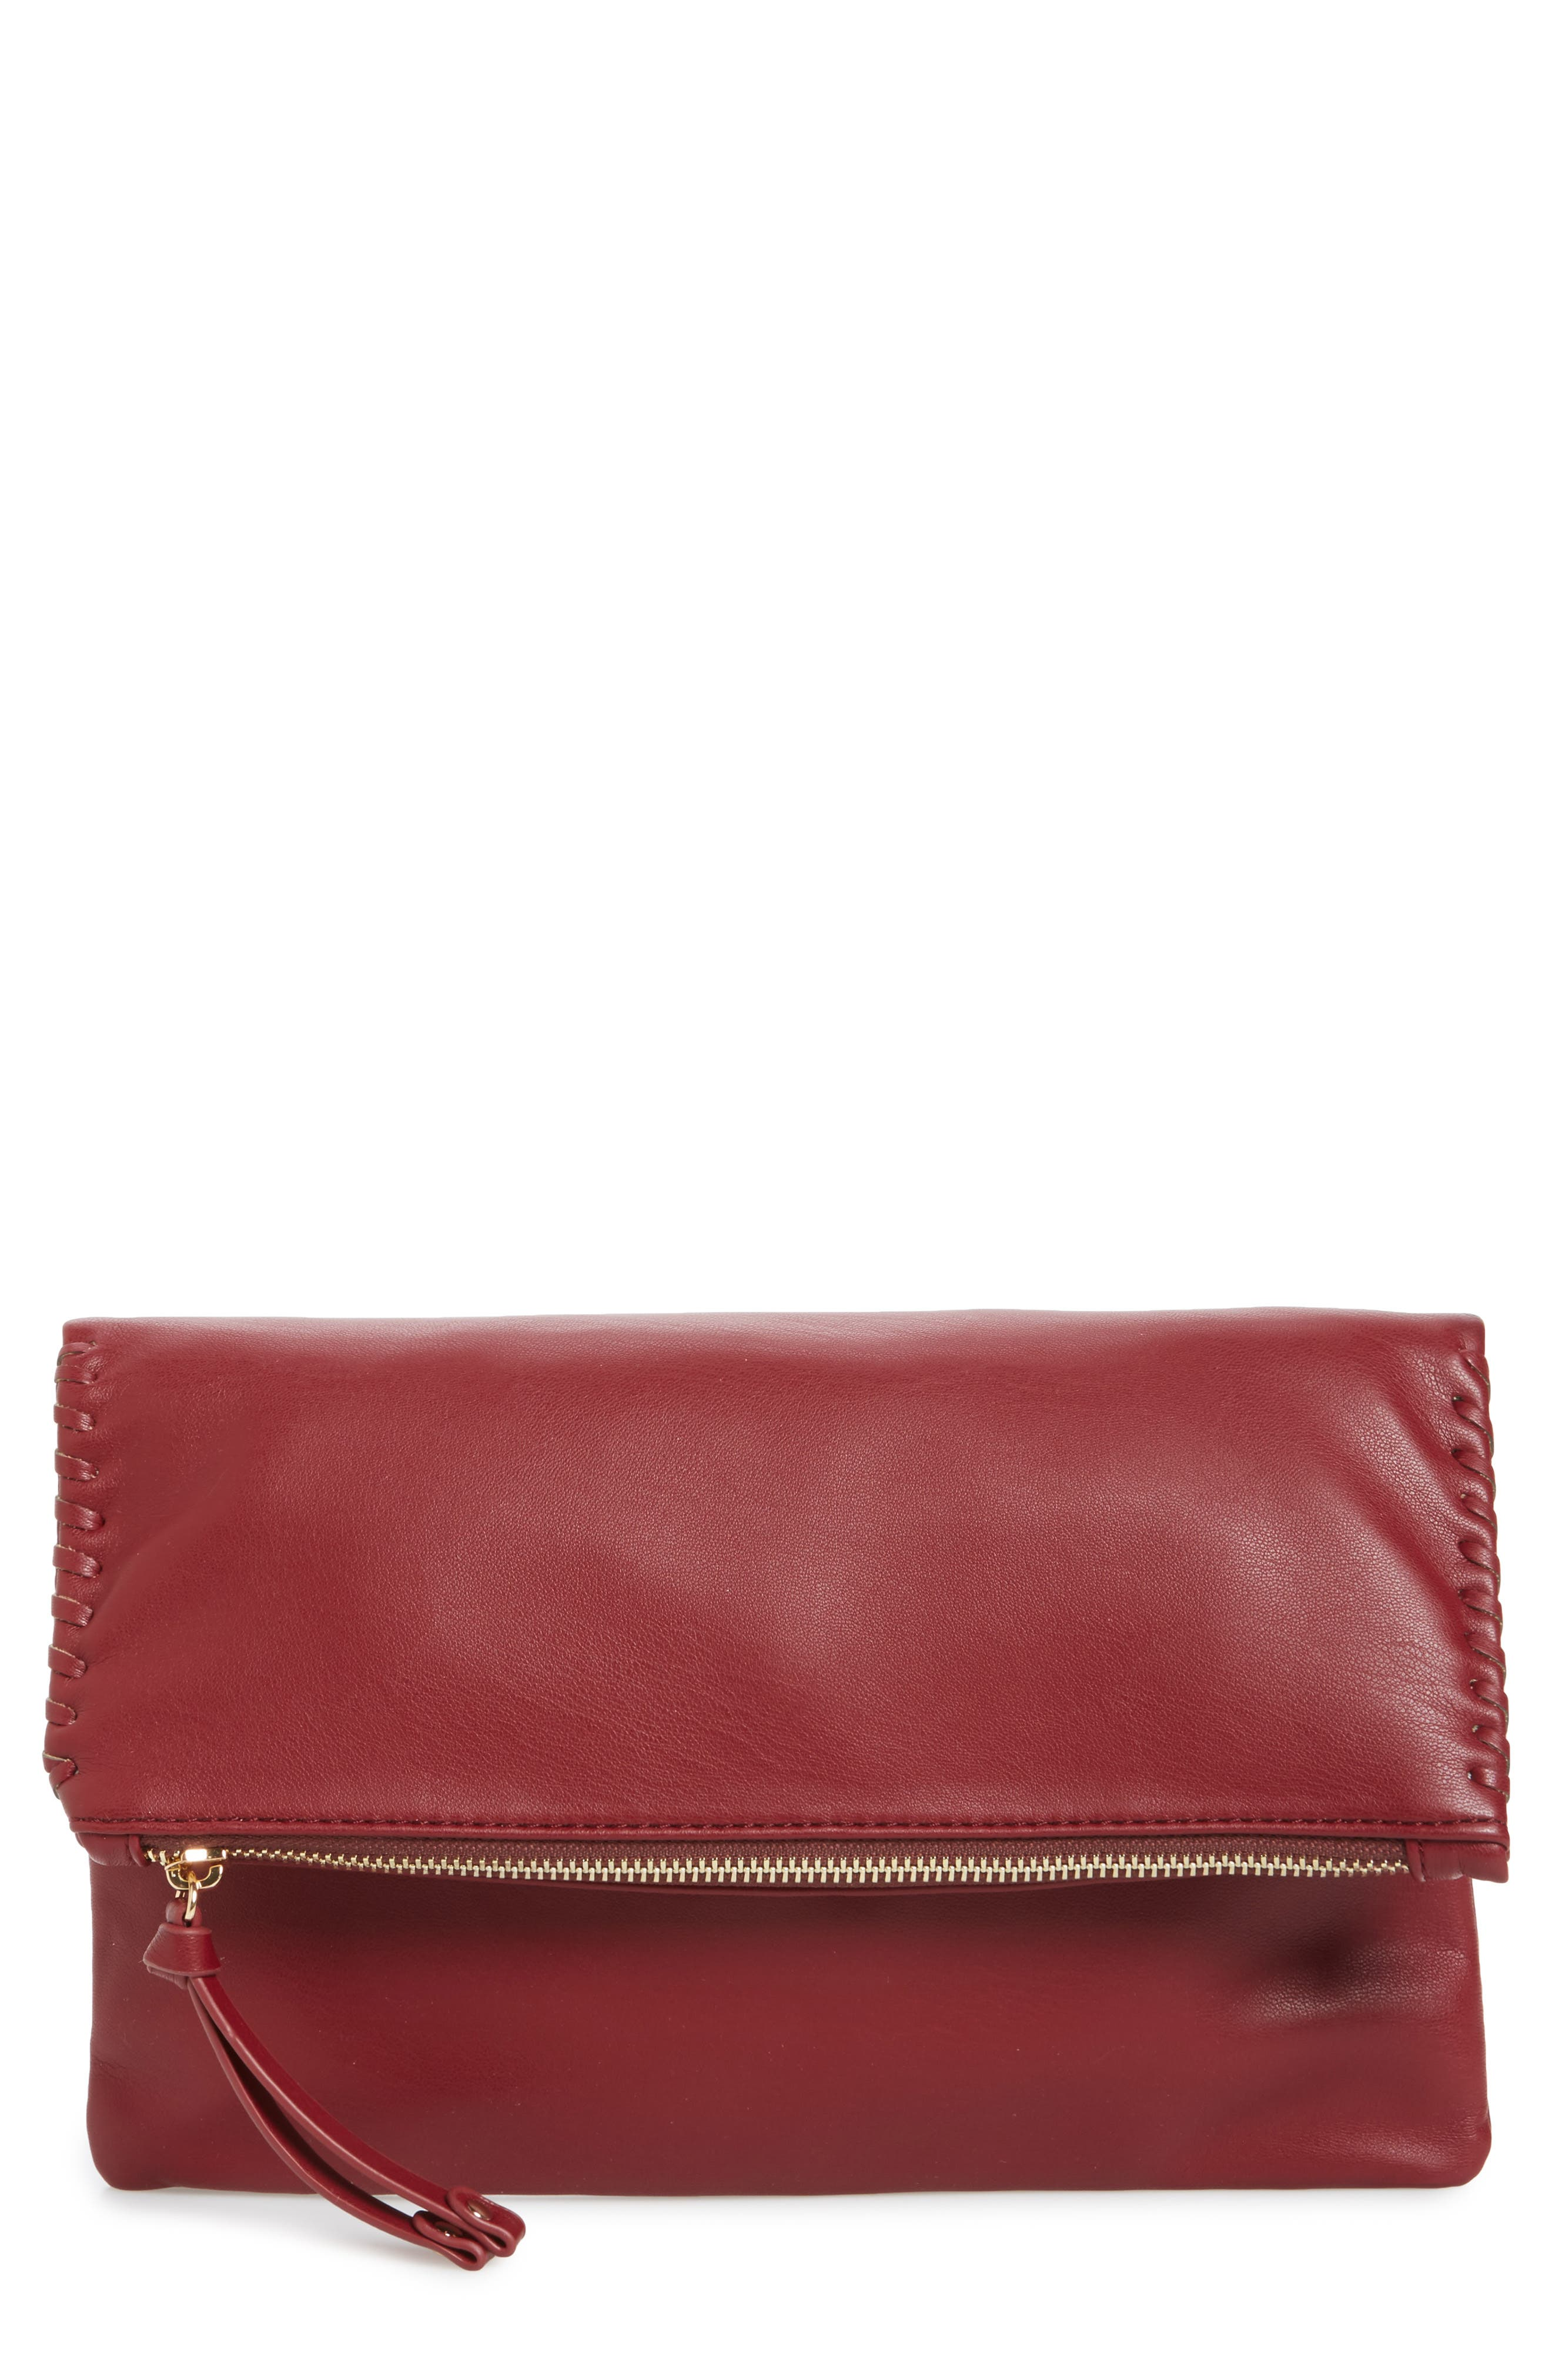 Main Image - Sole Society Rifkie Faux Leather Foldover Clutch